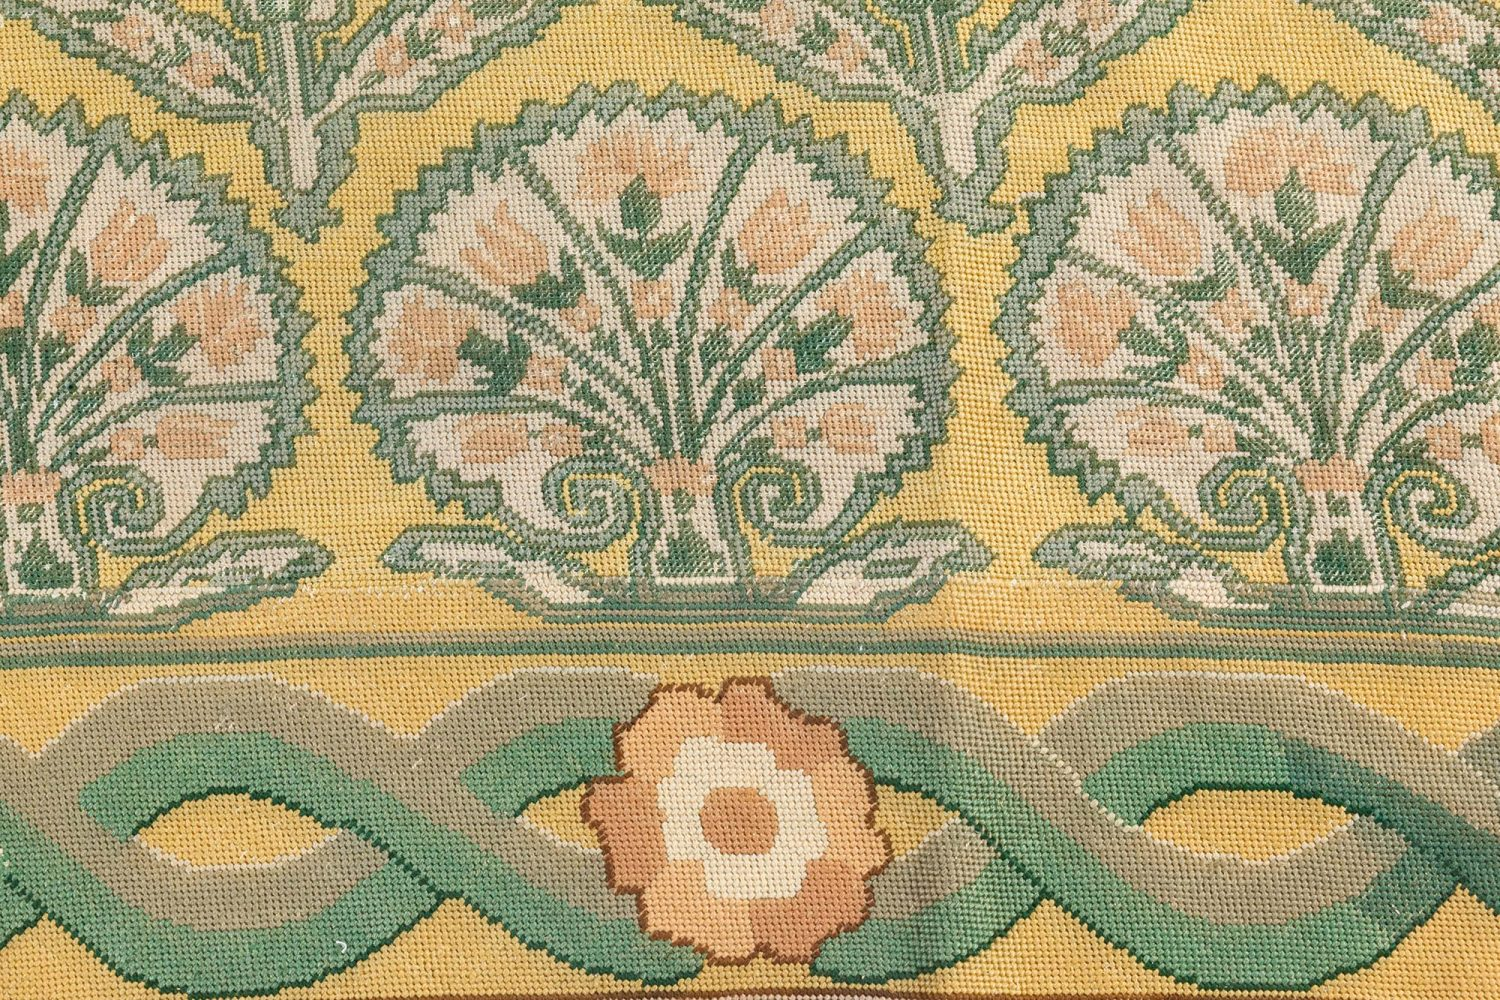 Antique Needlepoint Pale Green and Golden Yellow Carpet BB7072